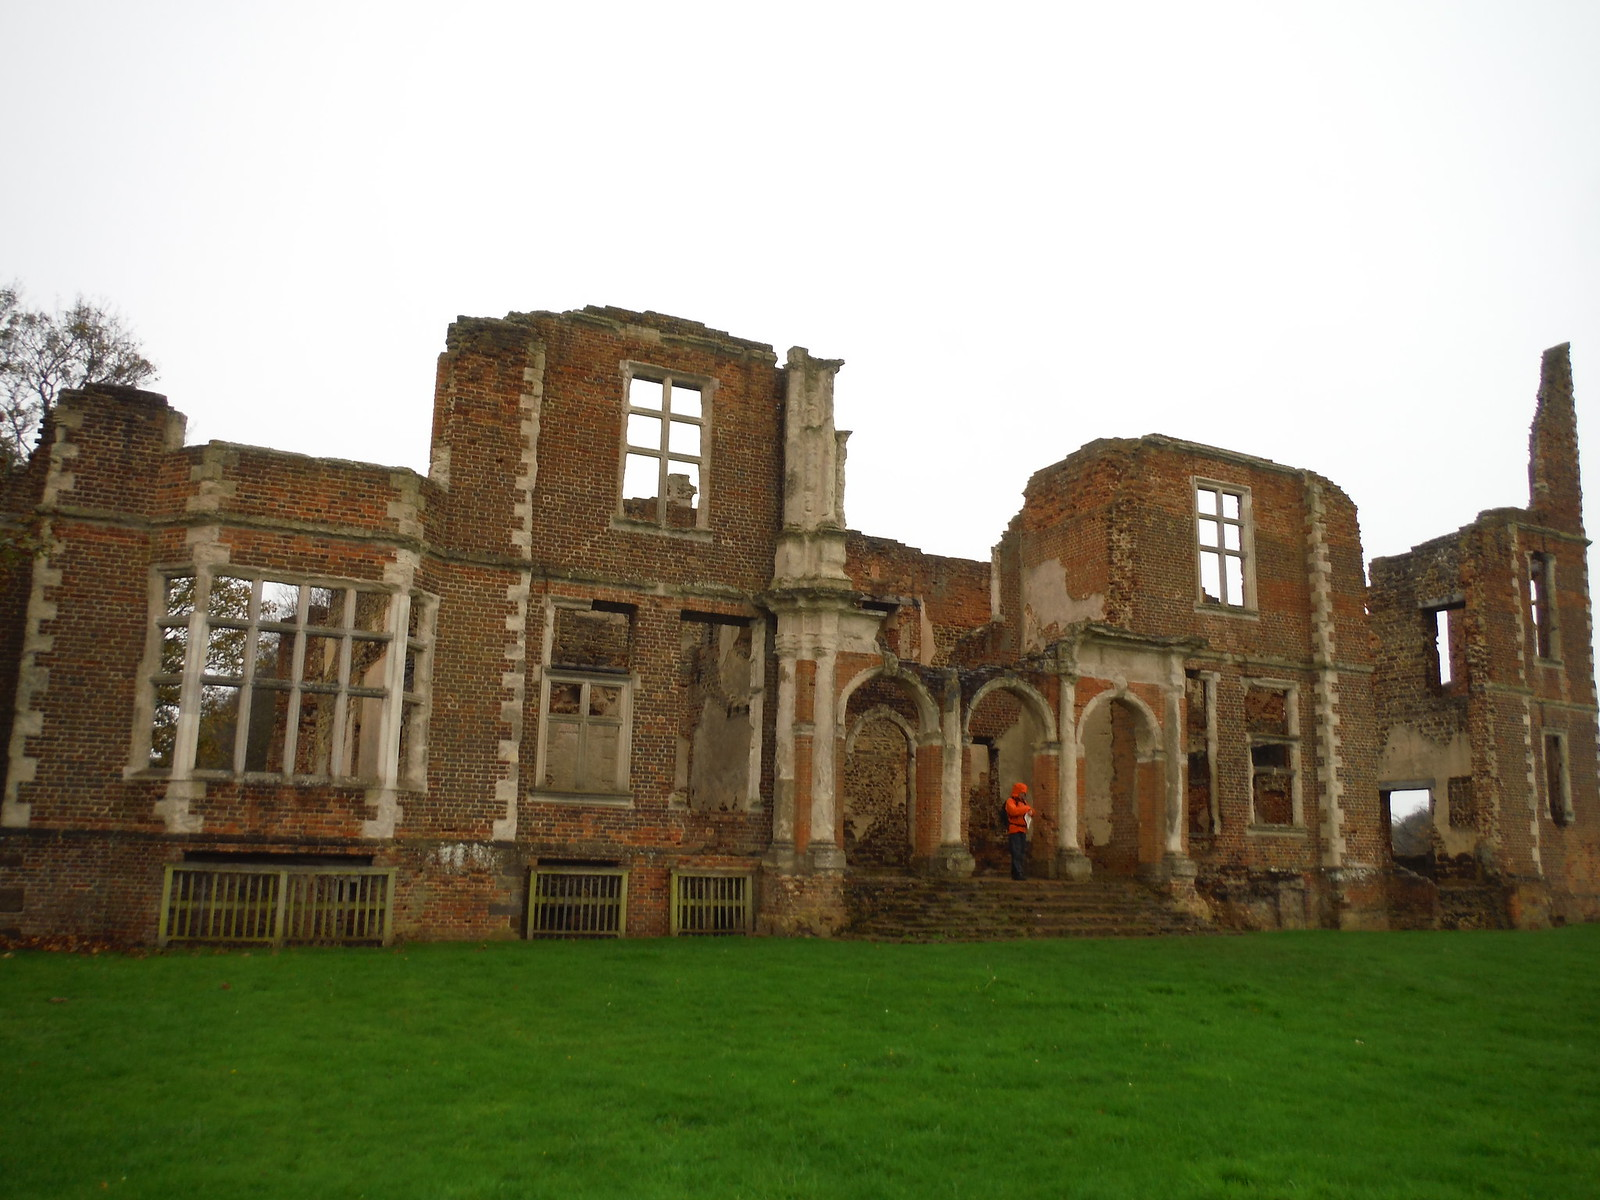 Houghton House, rear view SWC Walk 232 Lidlington to Flitwick